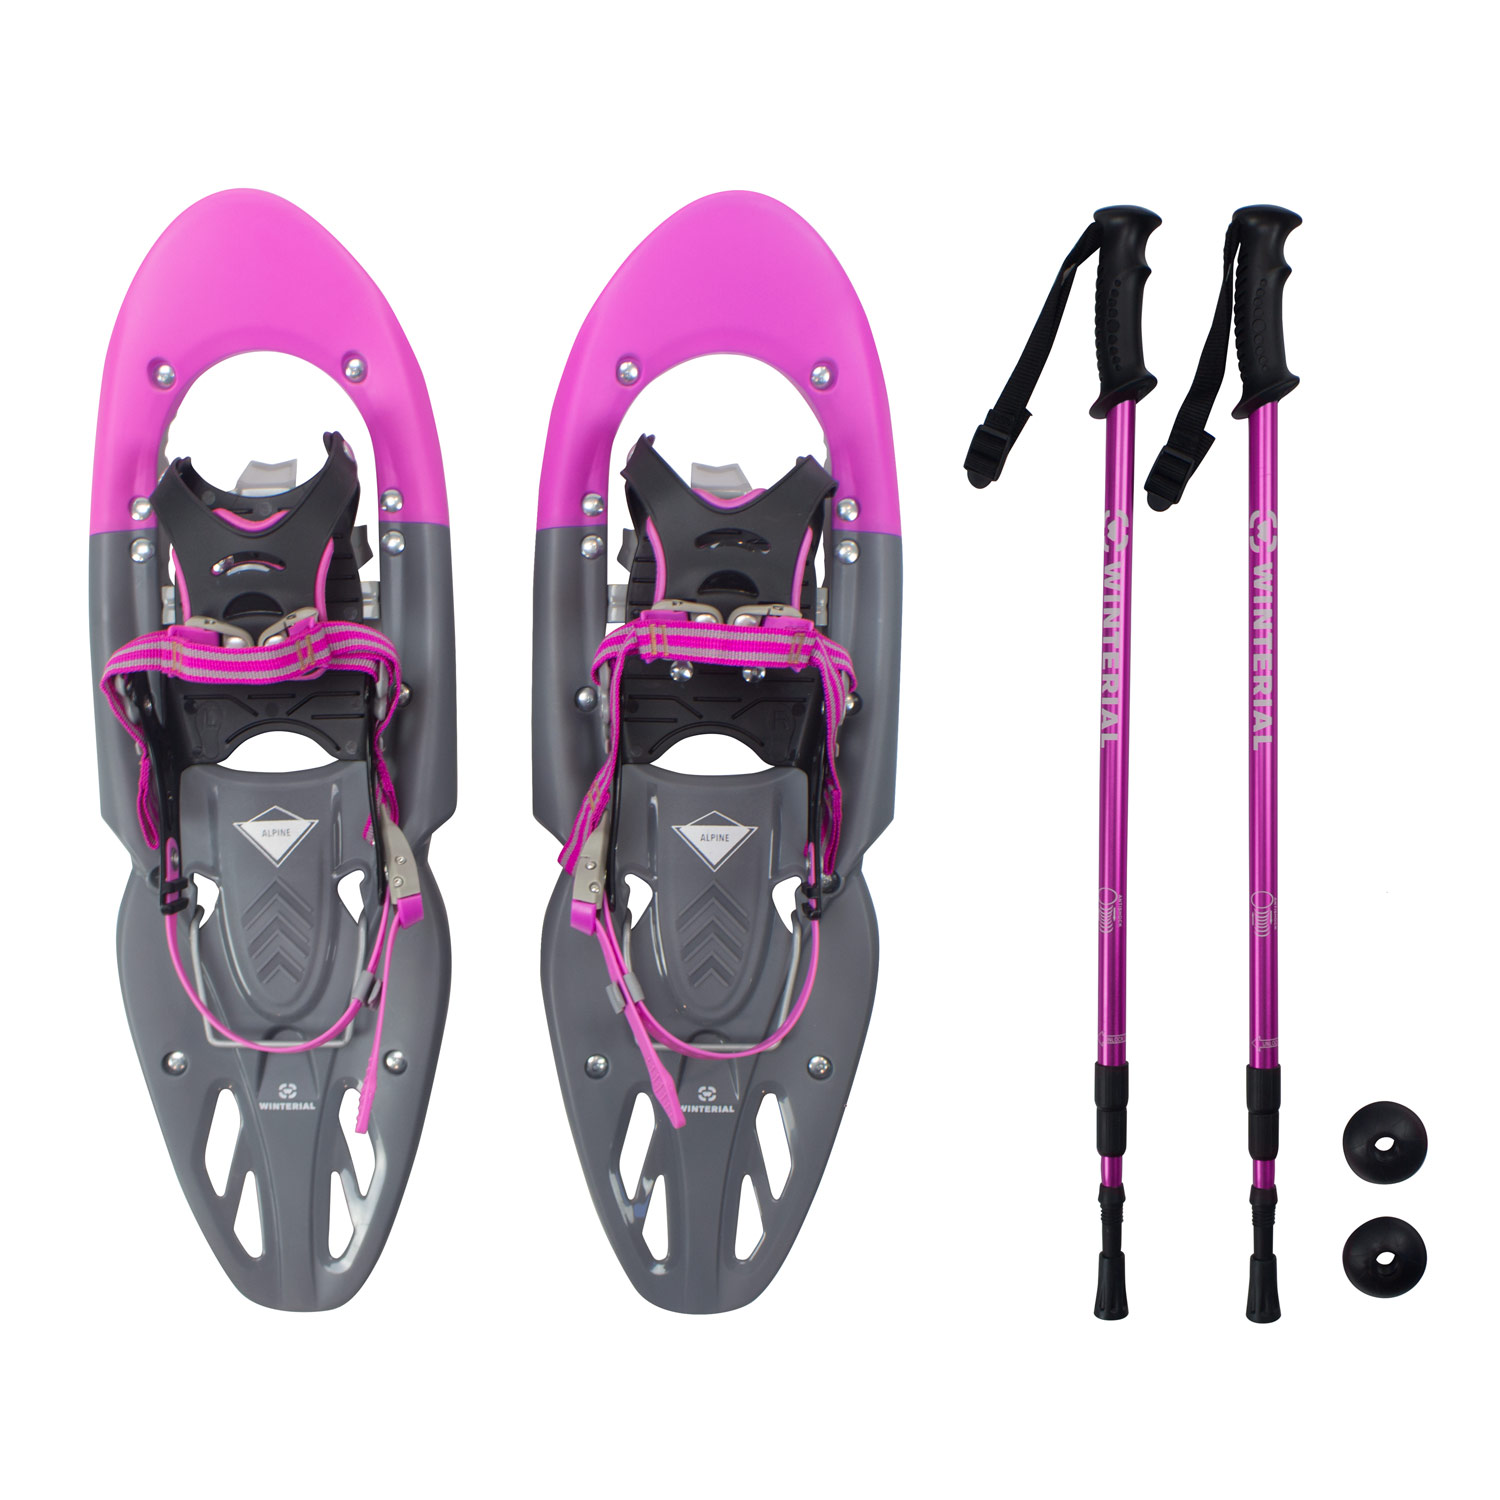 Winterial Yukon Snowshoes 2016-2017   Advanced   Backcountry   Snowshoeing   Women   Pink   All Terrain Snowshoes  ... by Winterial